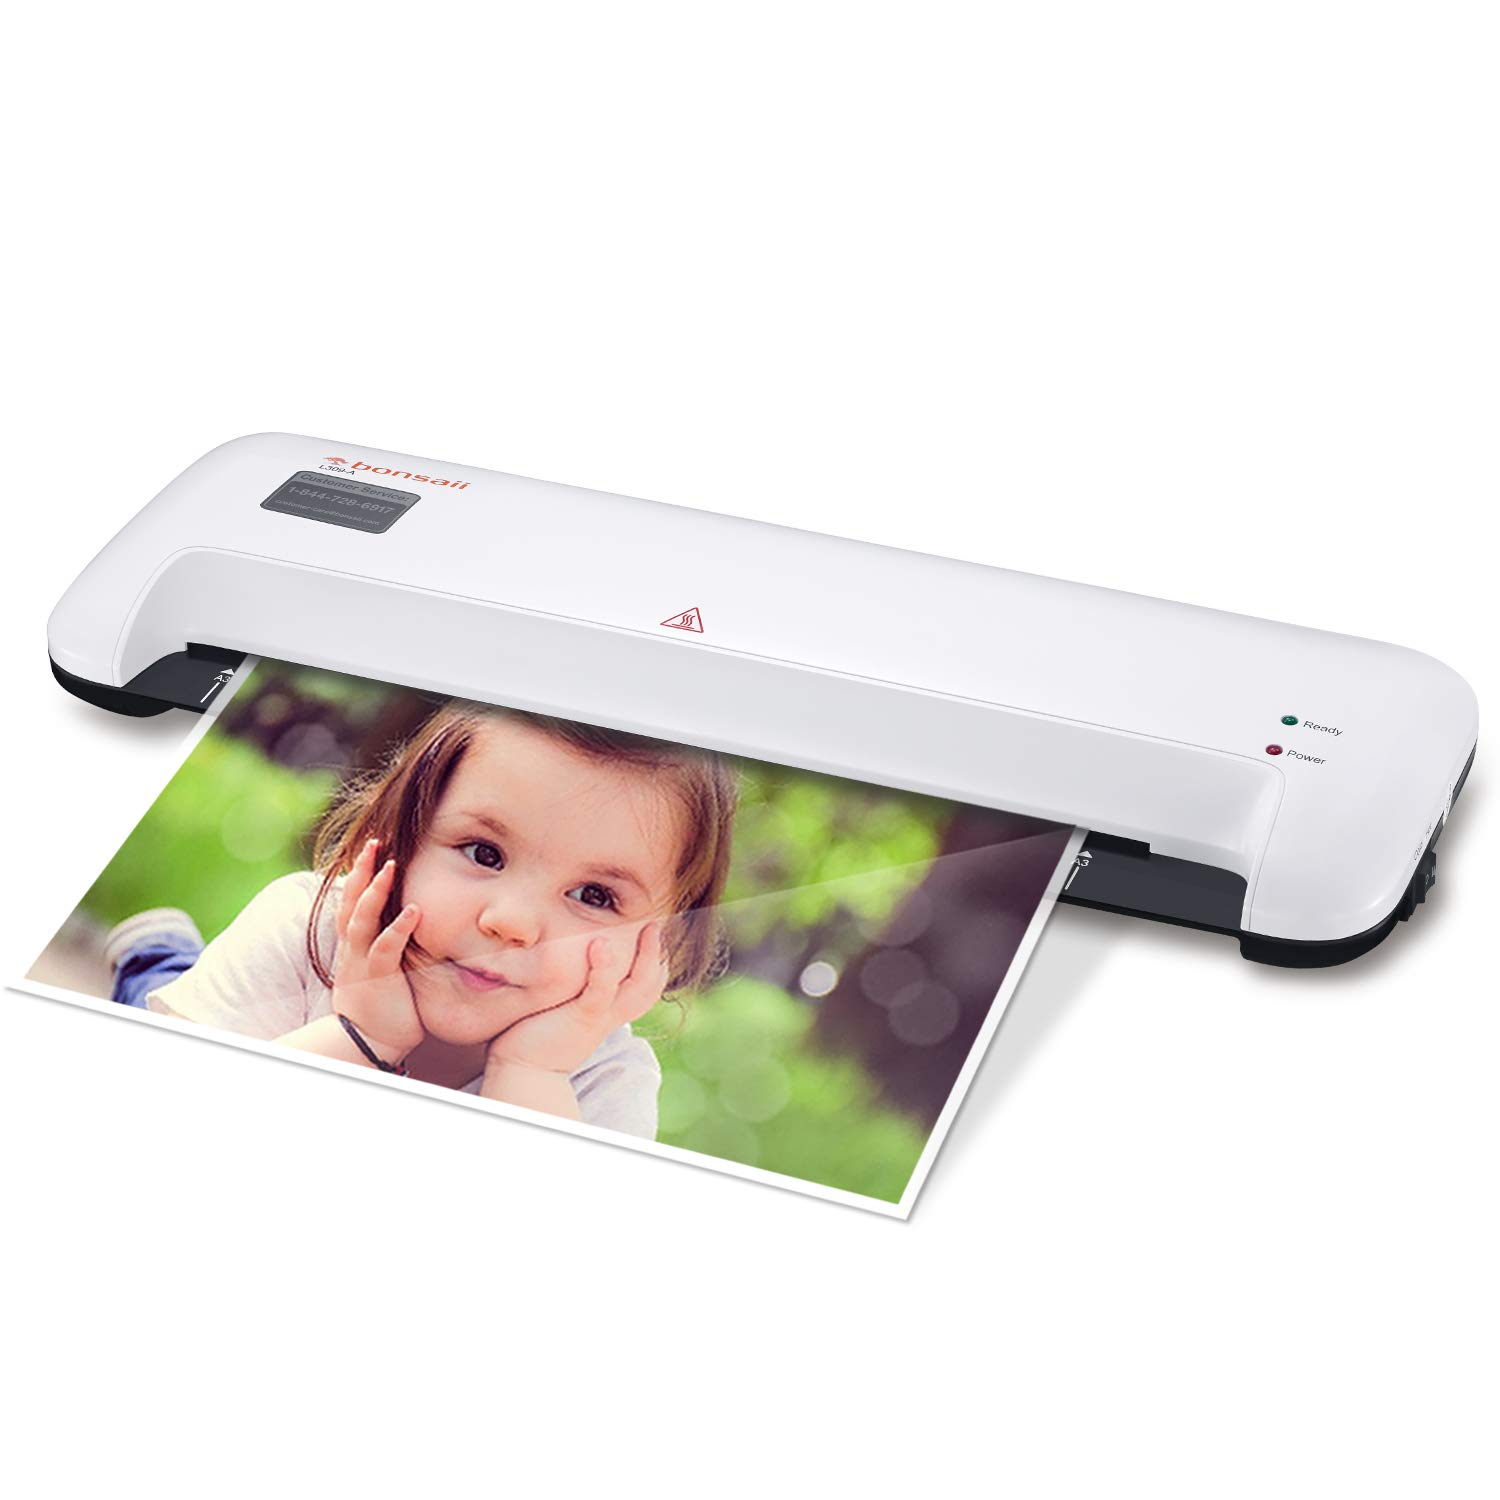 Thermal Laminator, 13 Inches Width Laminating Machine for A3/A4/A6, 3 Min Fast Warm-up with 12 inches/min Quick Laminating Speed, Quiet for Office/School/Home Use, Includes Laminating Pouches, L309-A